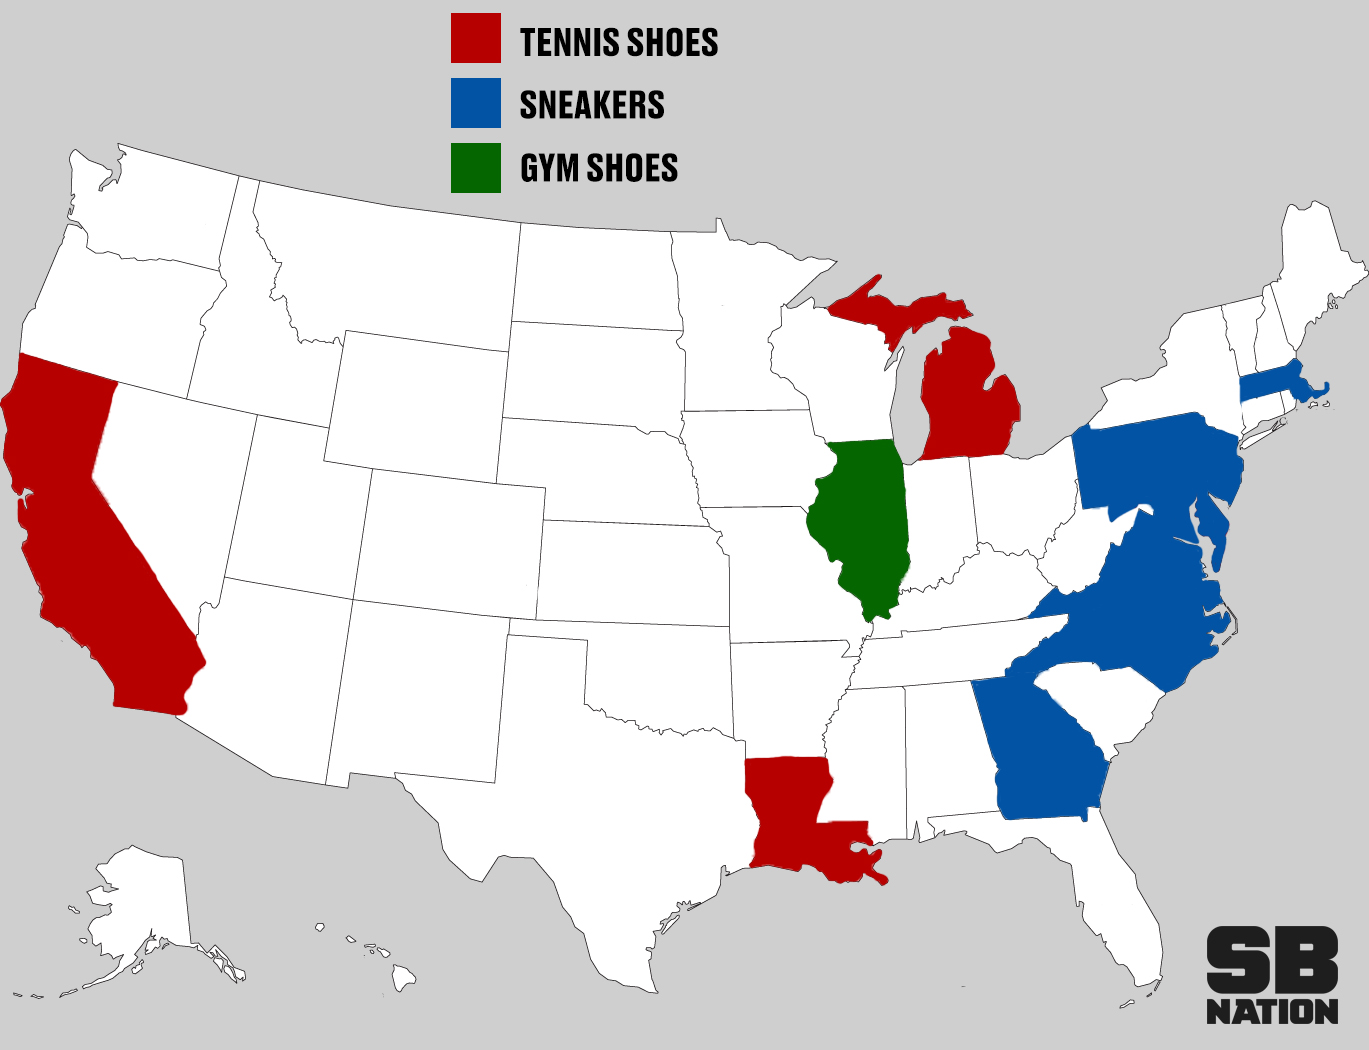 Tennis Shoes Vs Sneakers Map